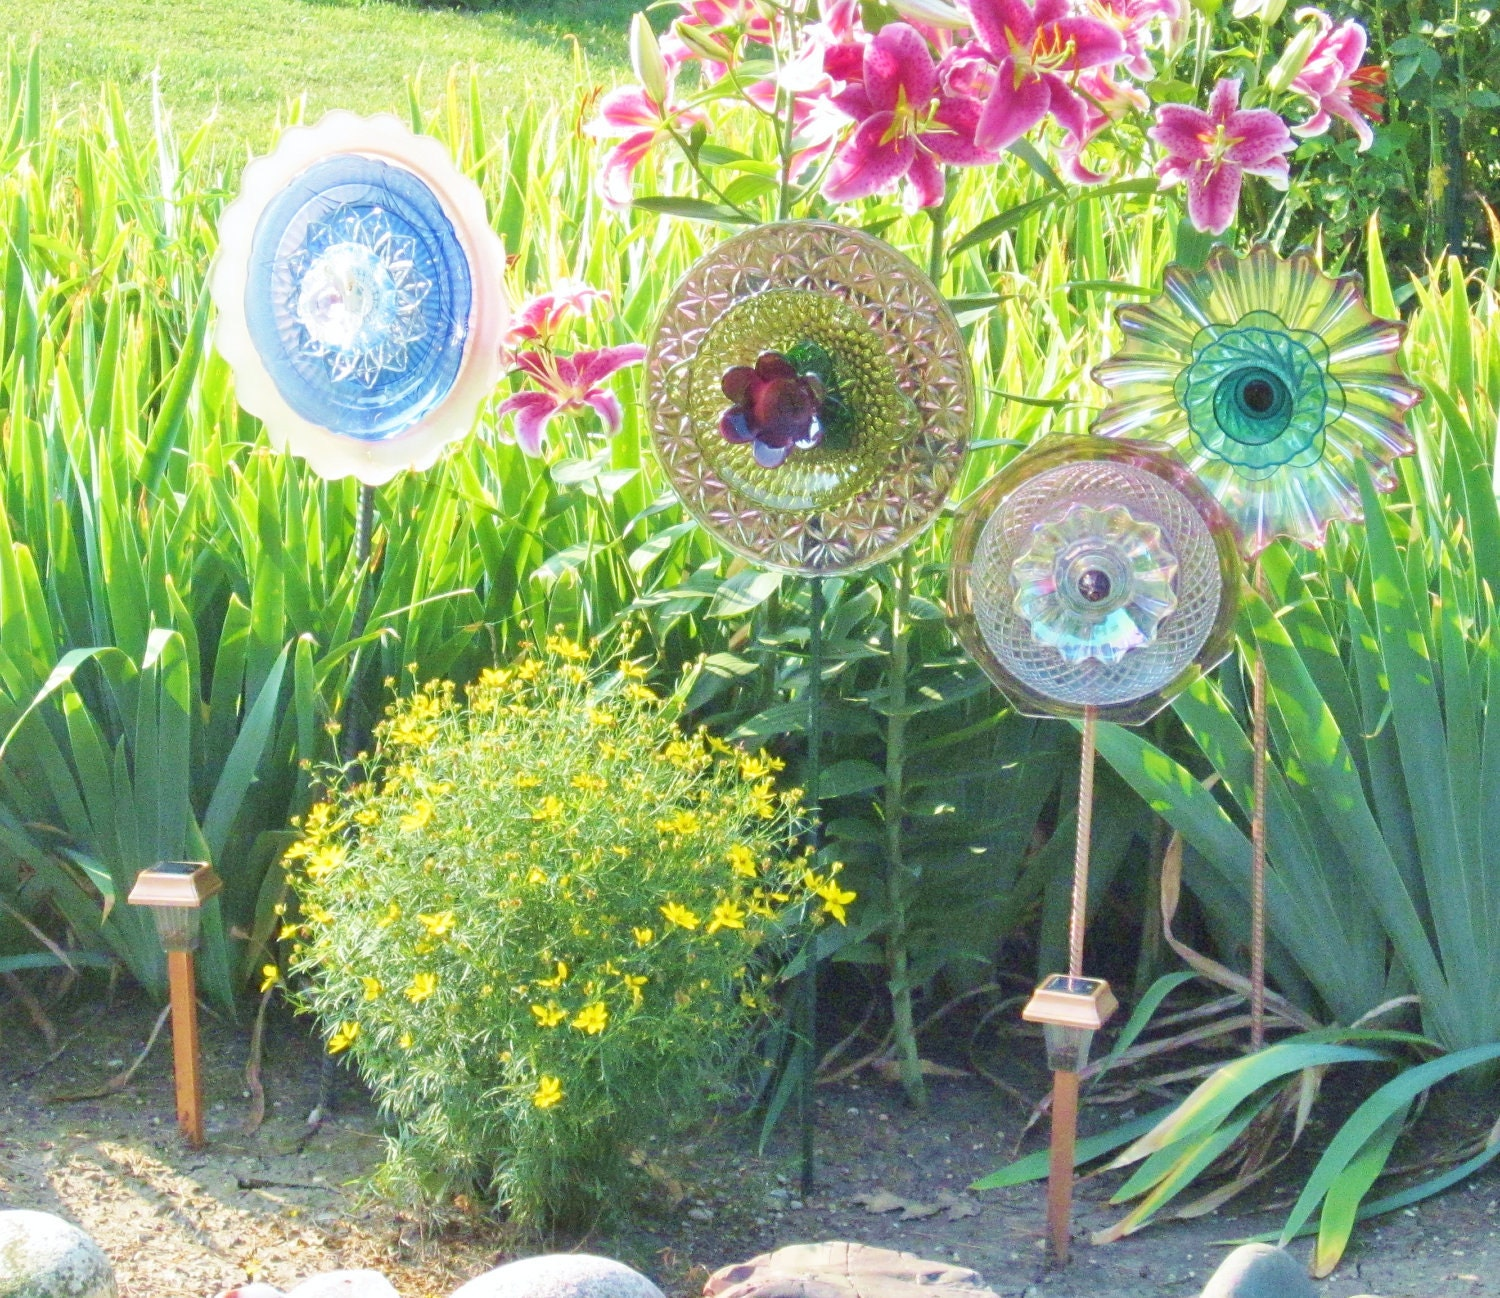 Lawn and garden decorative accessories garden decoration for Garden ornaments and accessories